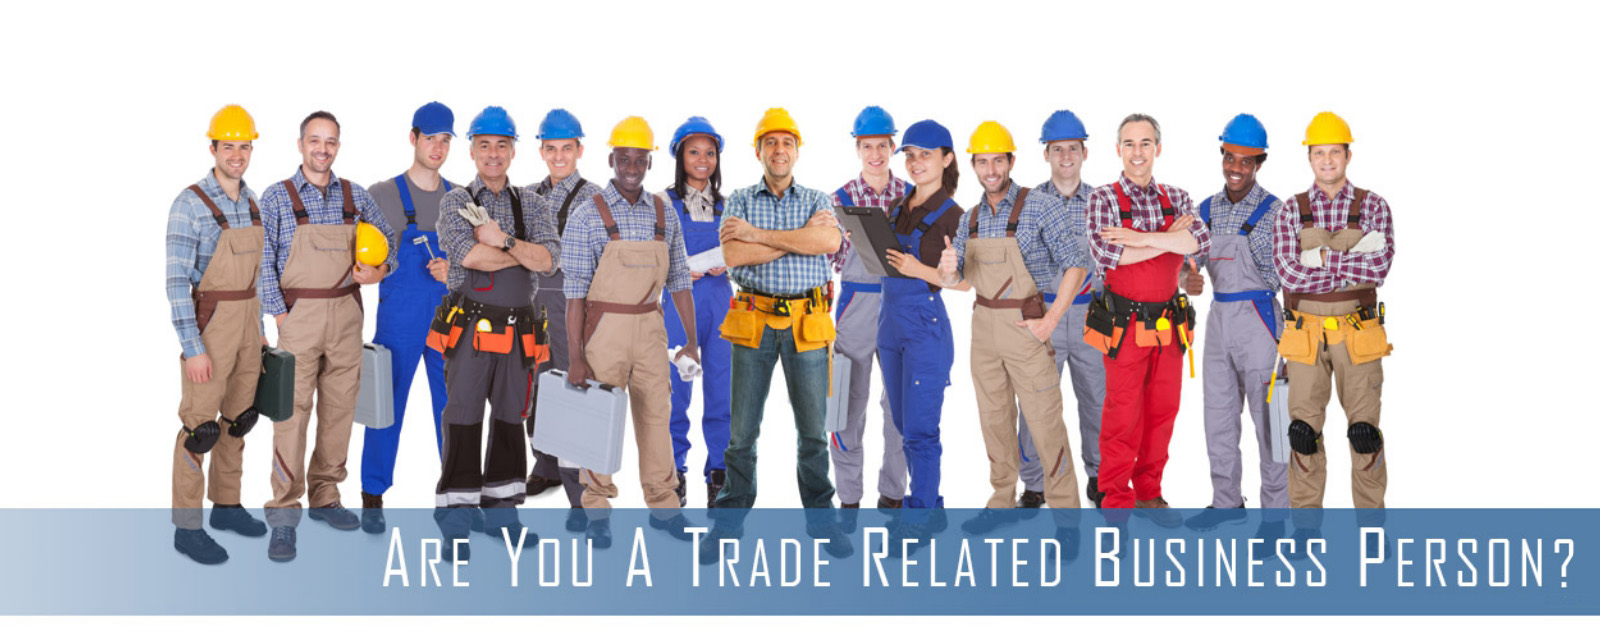 Are you a trades related business person?